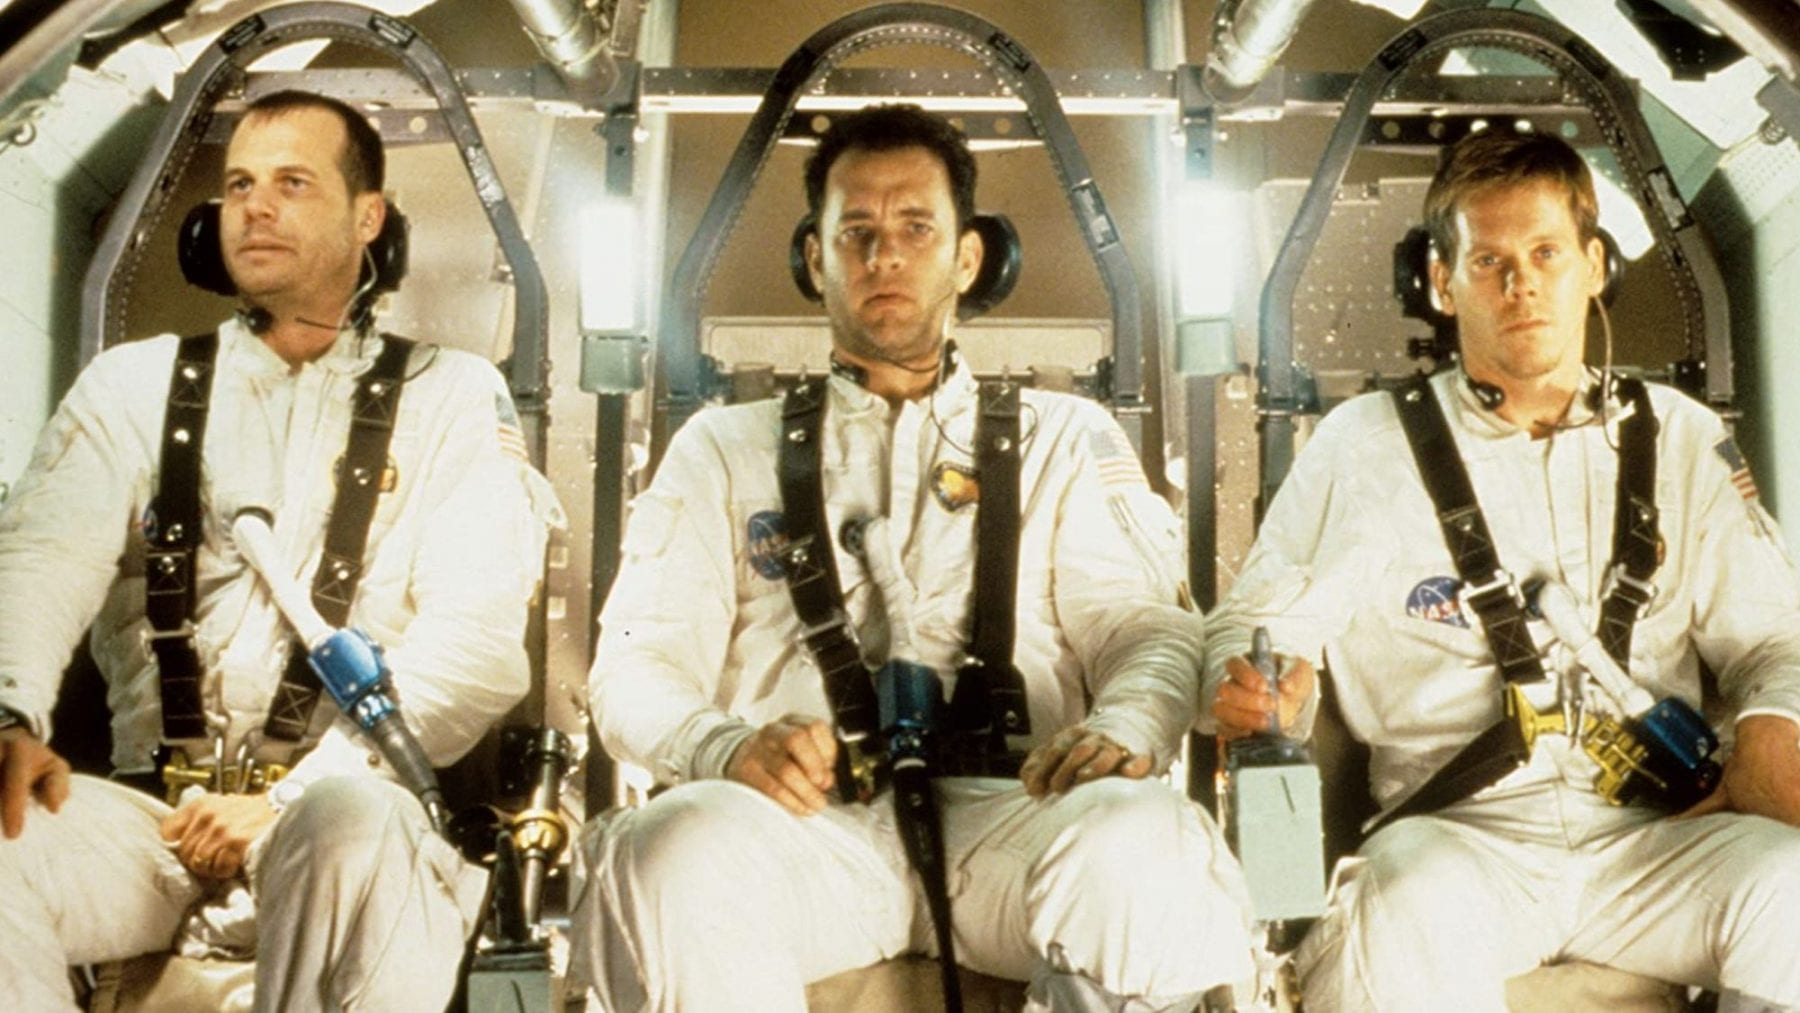 Apollo 13 is a powerful space-themed movie based on real events. Credit: Mental Floss